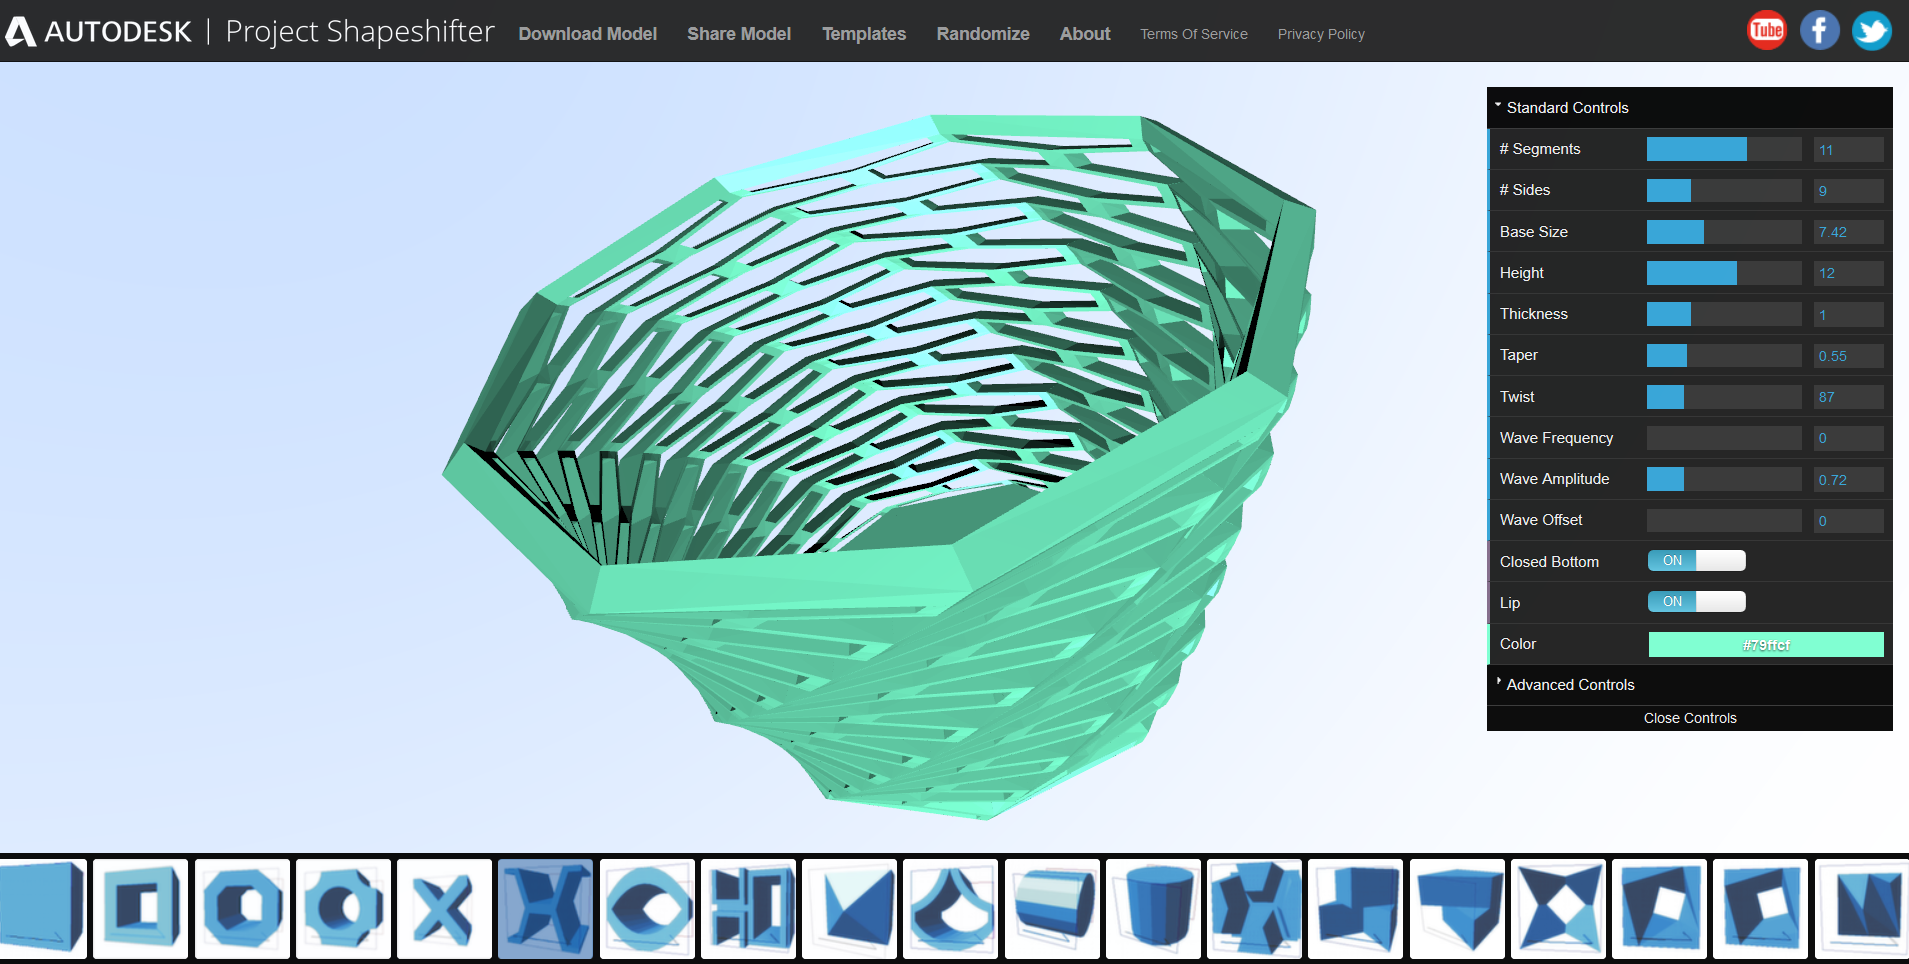 Another Fine Mesh | CFD, Meshing, and More | Page 64